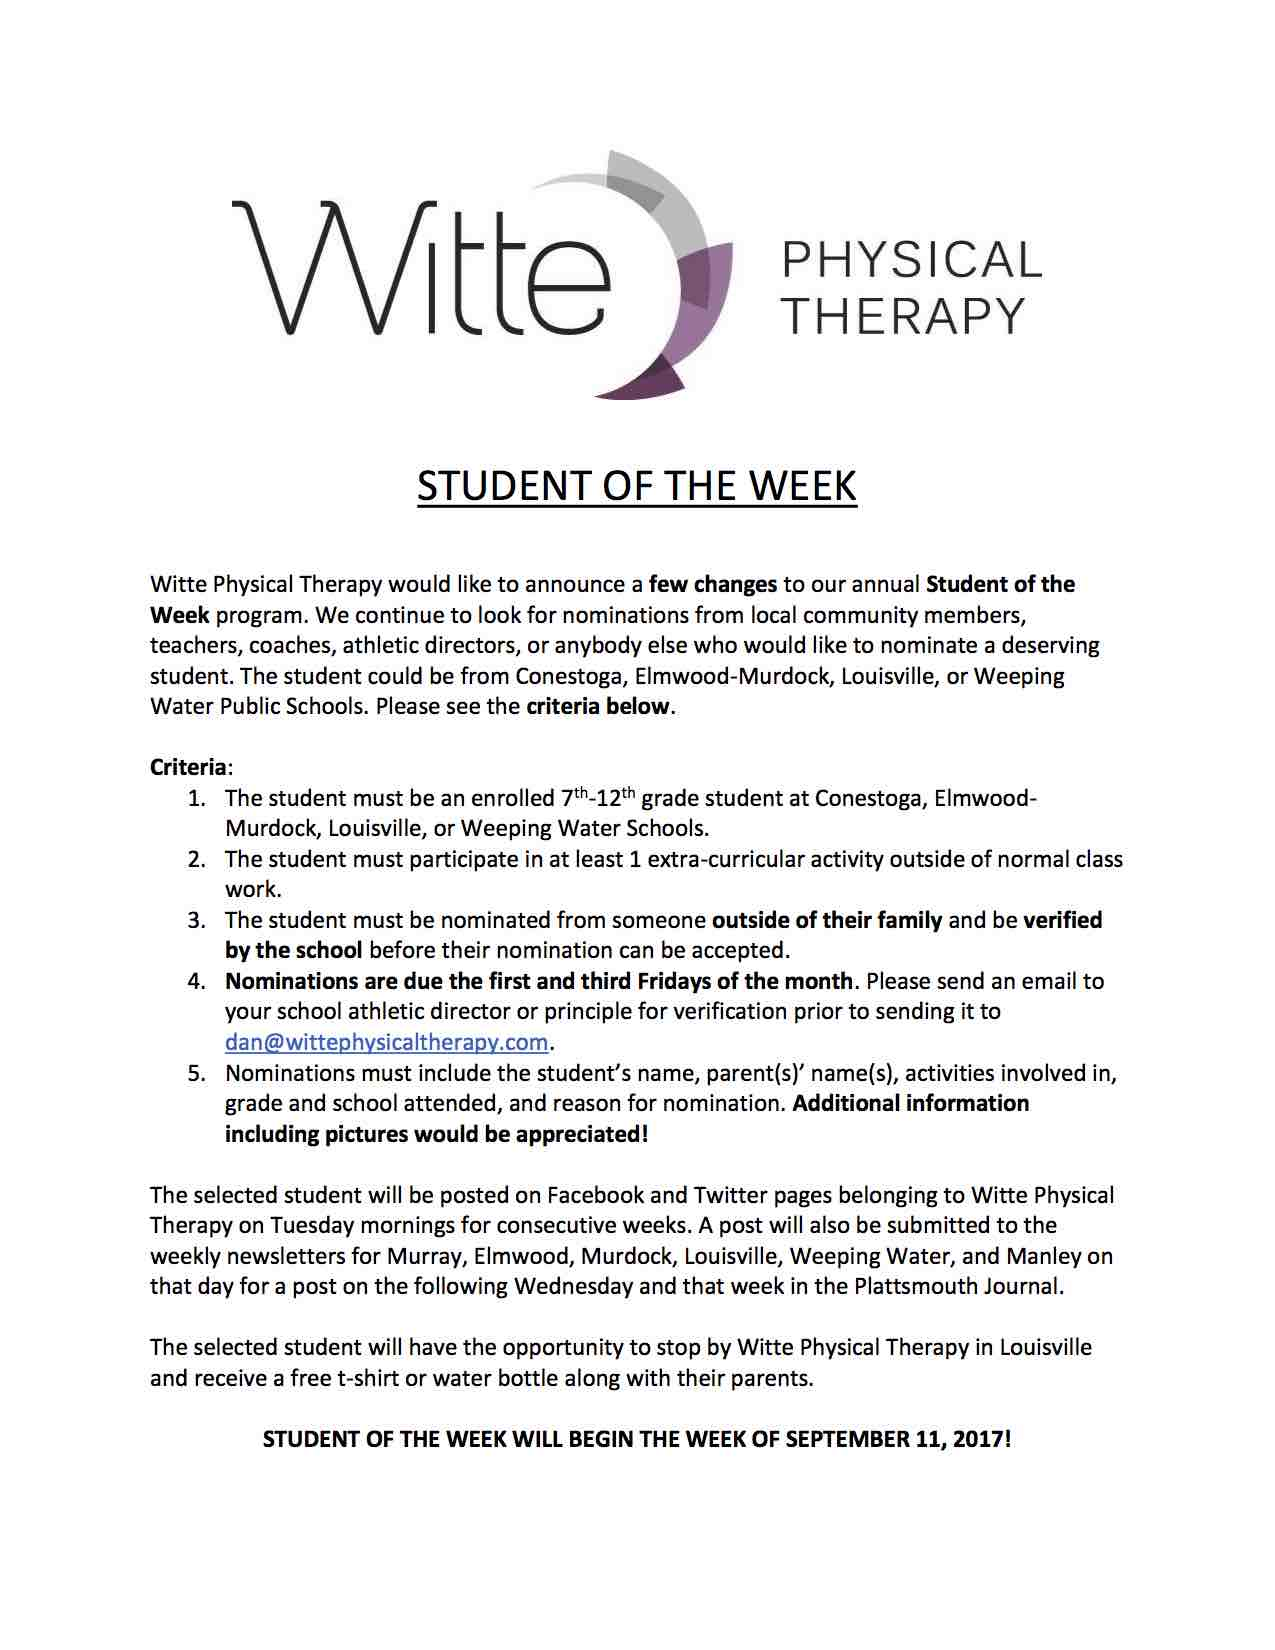 Student of the Week 2017